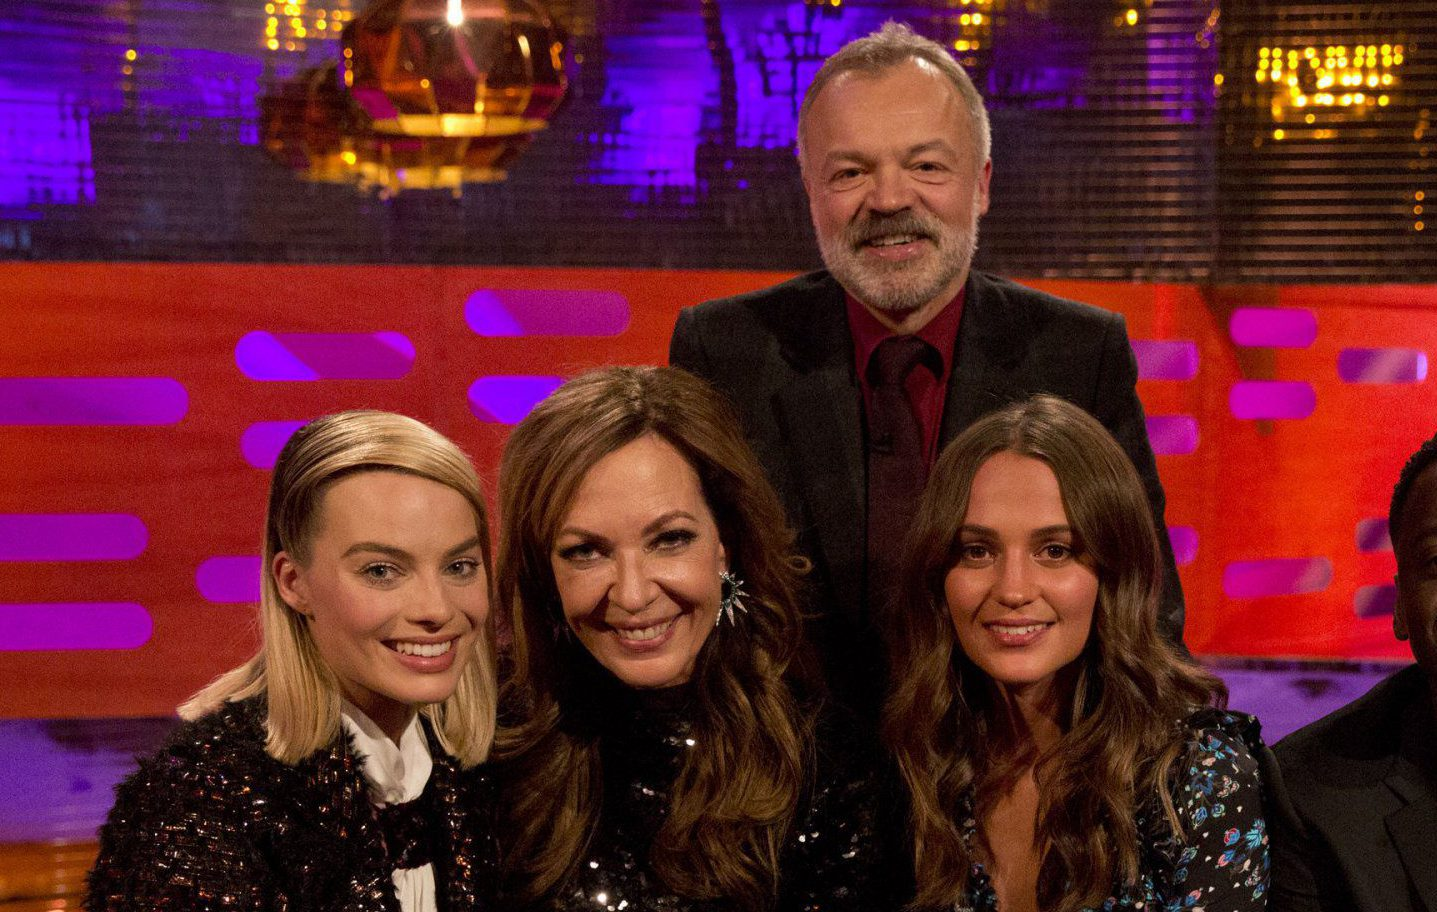 Who is on The Graham Norton Show tonight – guests include Camila Cabello, Margot Robbie and Allison Janney